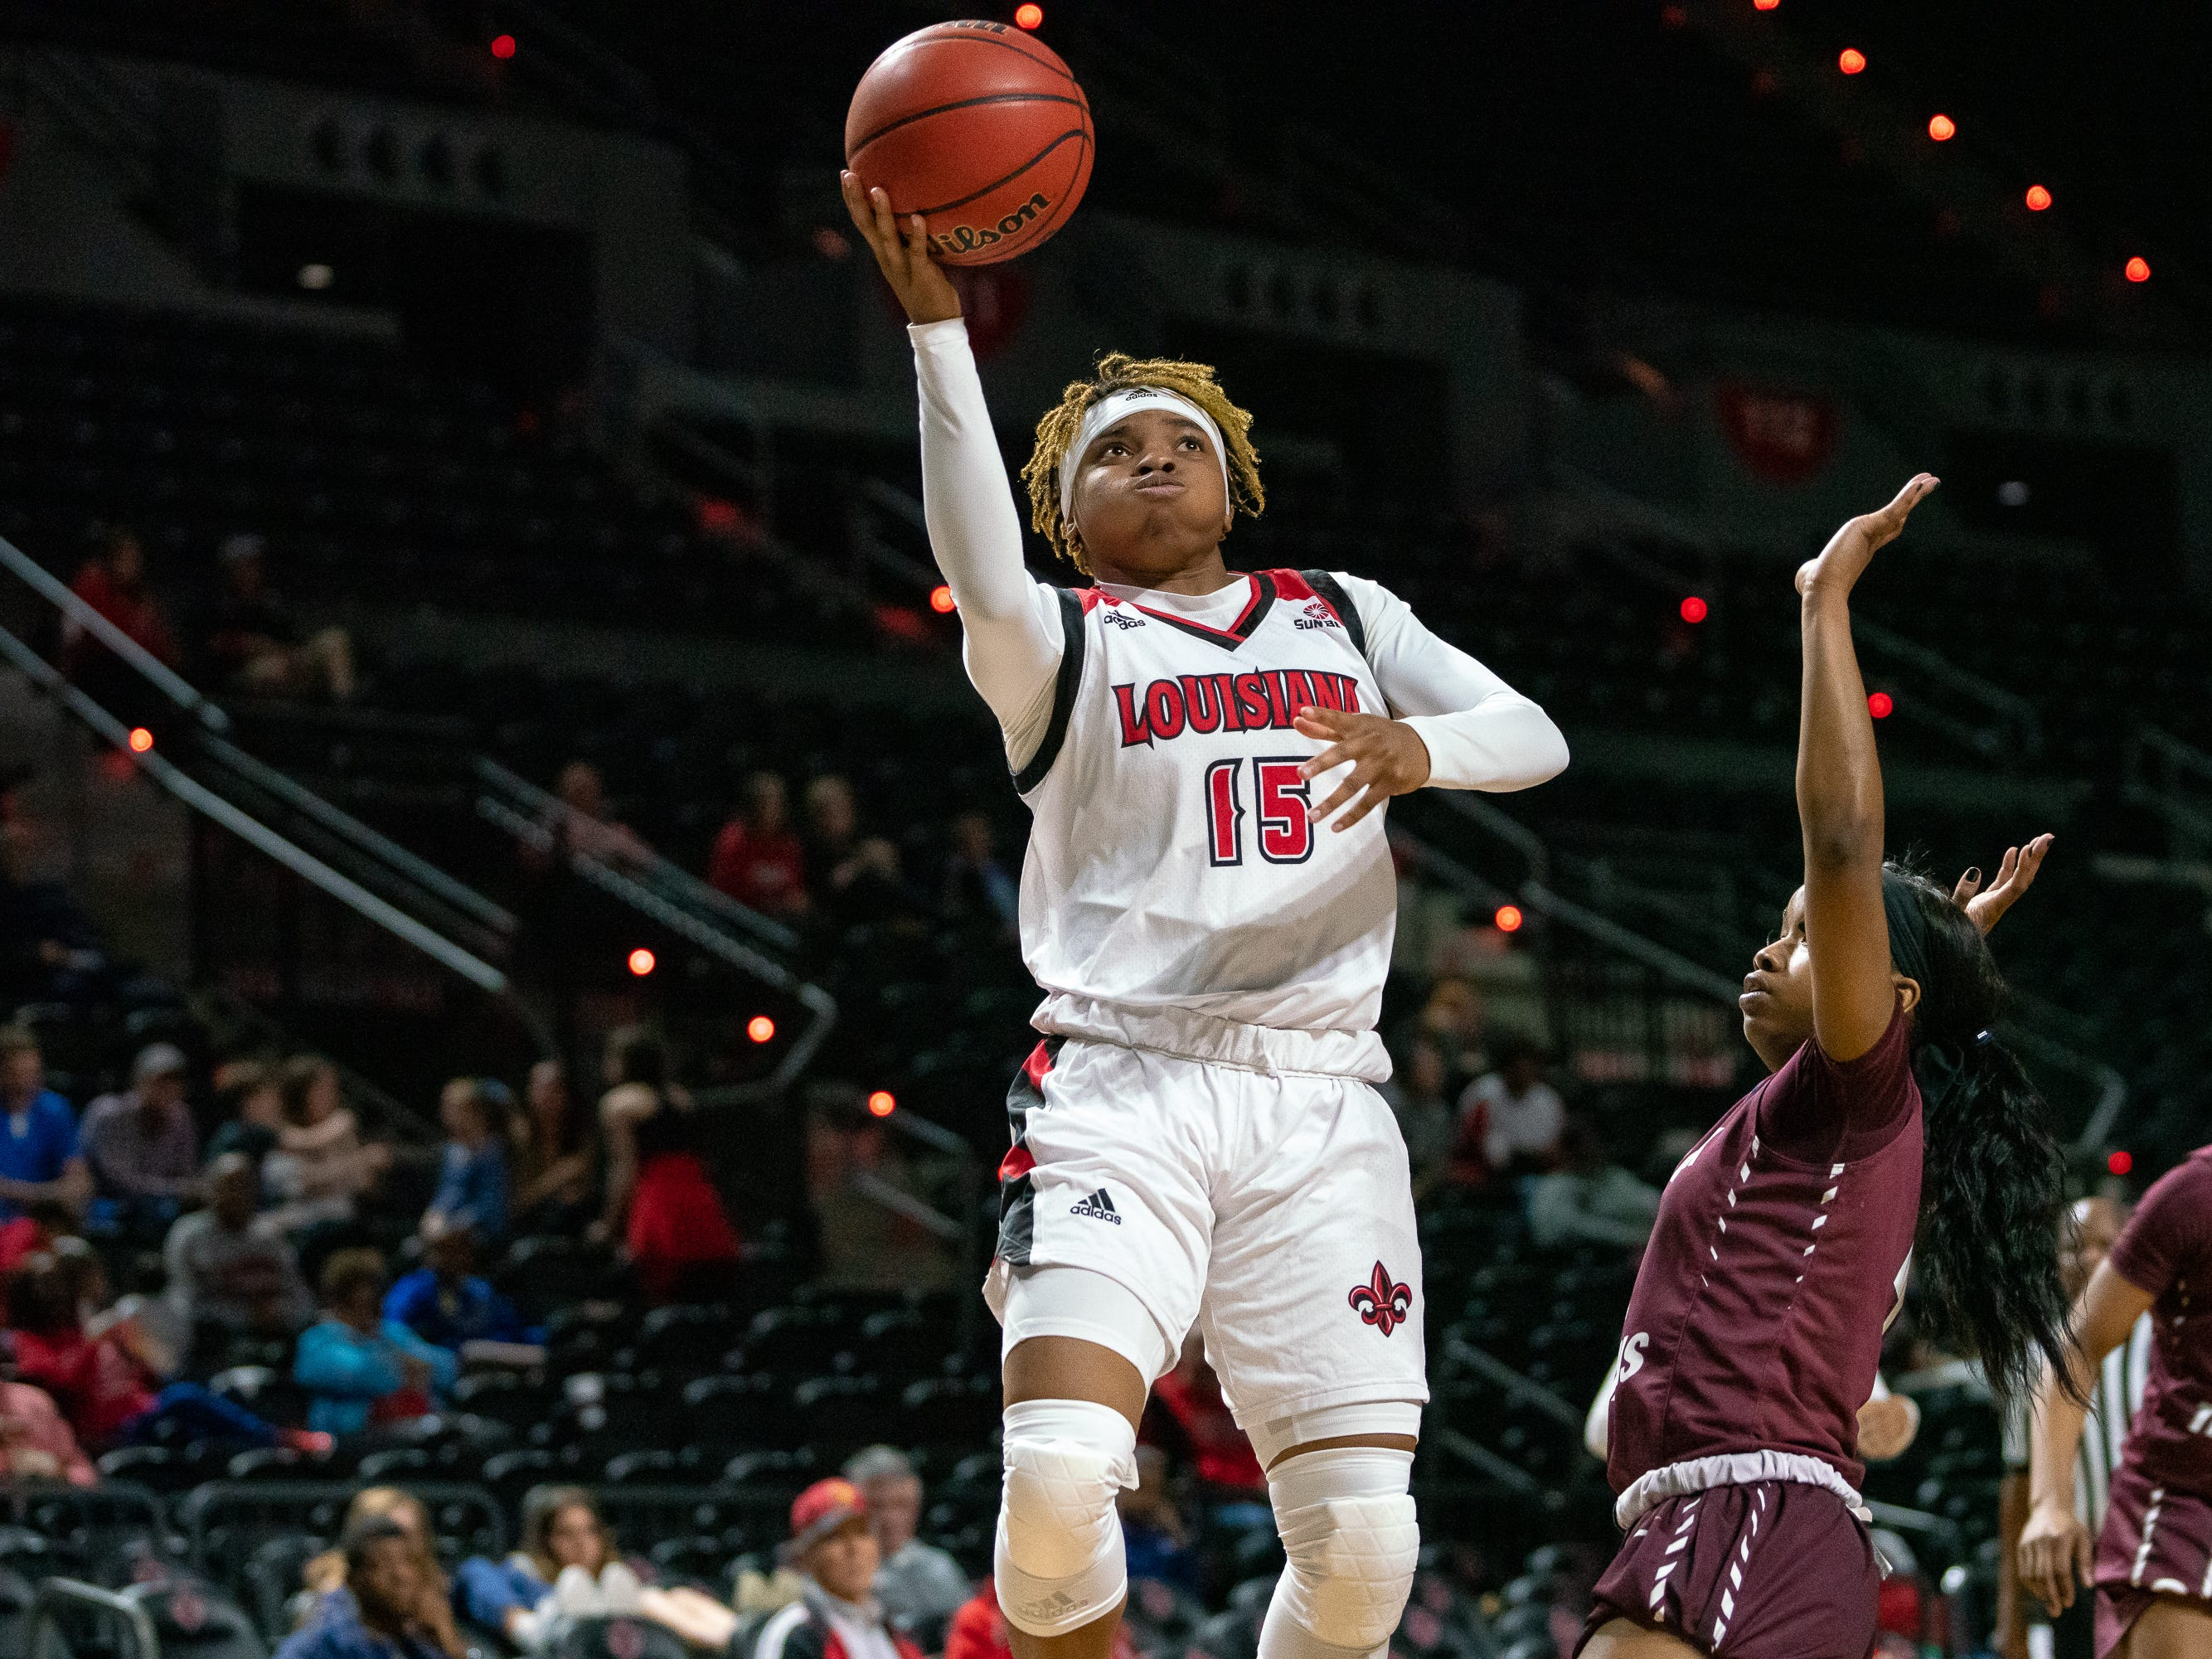 UL's Diamond Morrison scores a layup during the play as the Ragin' Cajuns take on the Little Rock Trojans at the Cajundome on Thursday, March 7, 2019.